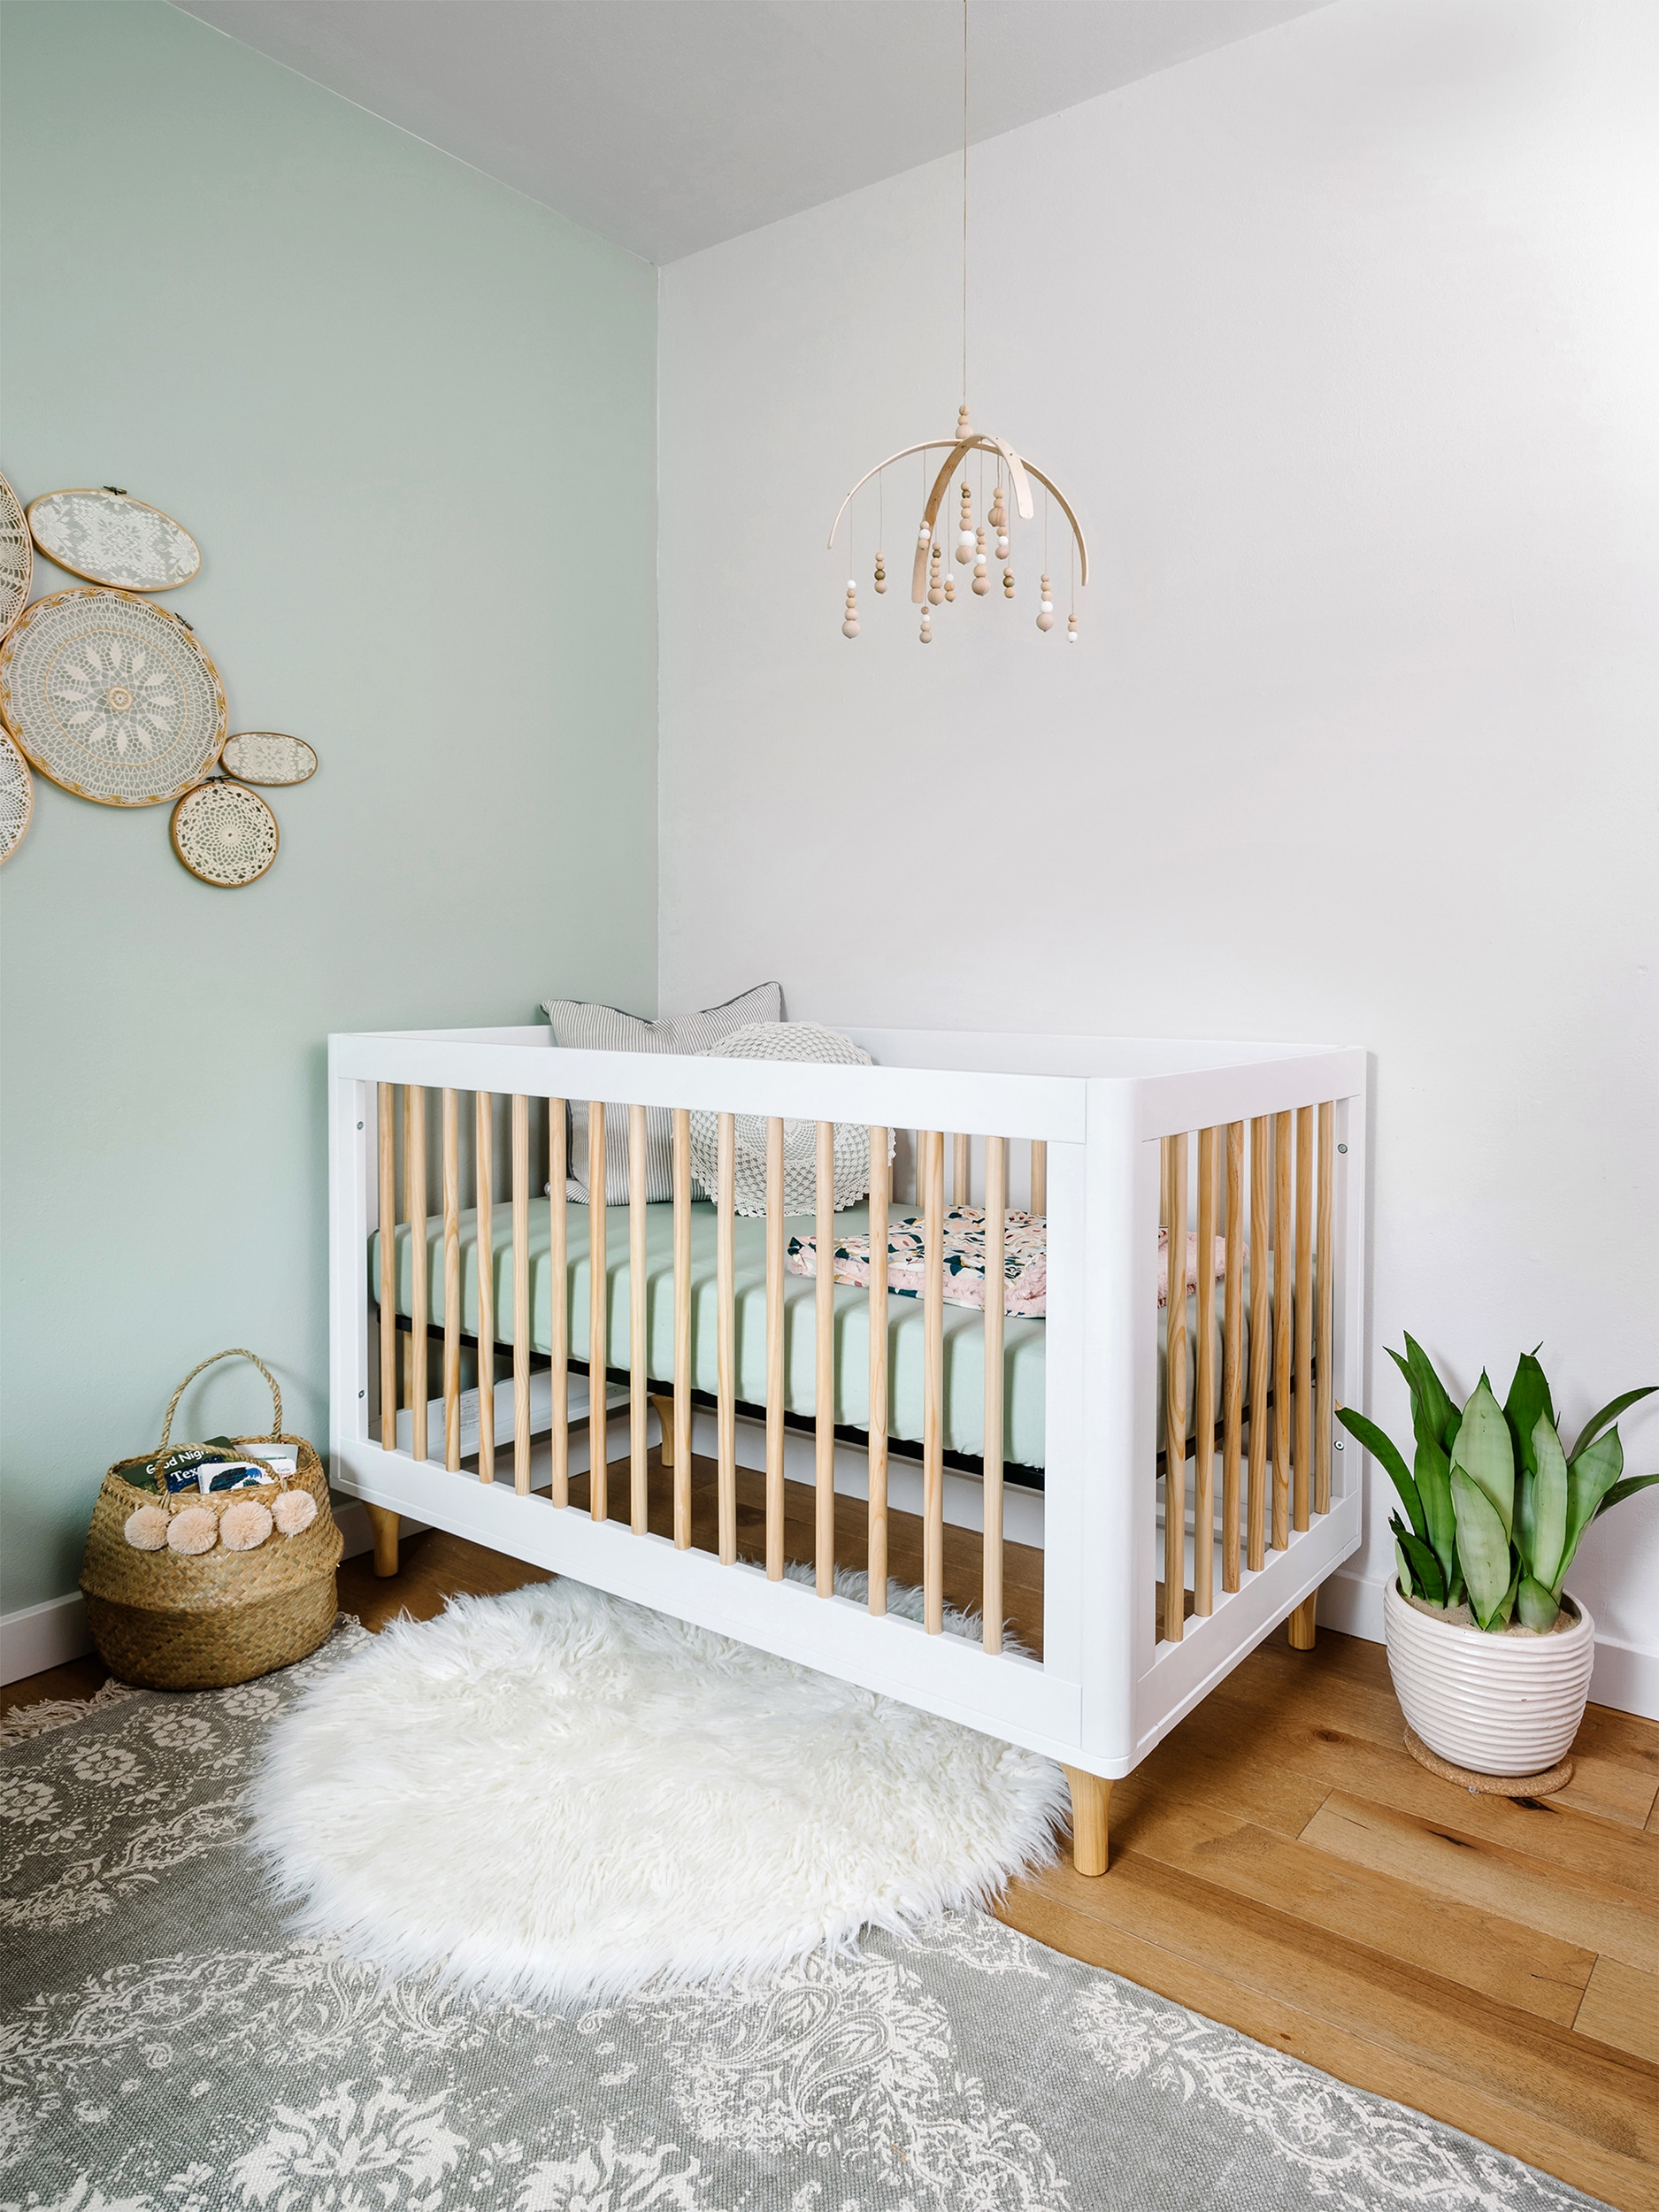 Sophisticated Scandi Inspired Nursery - Project Nursery